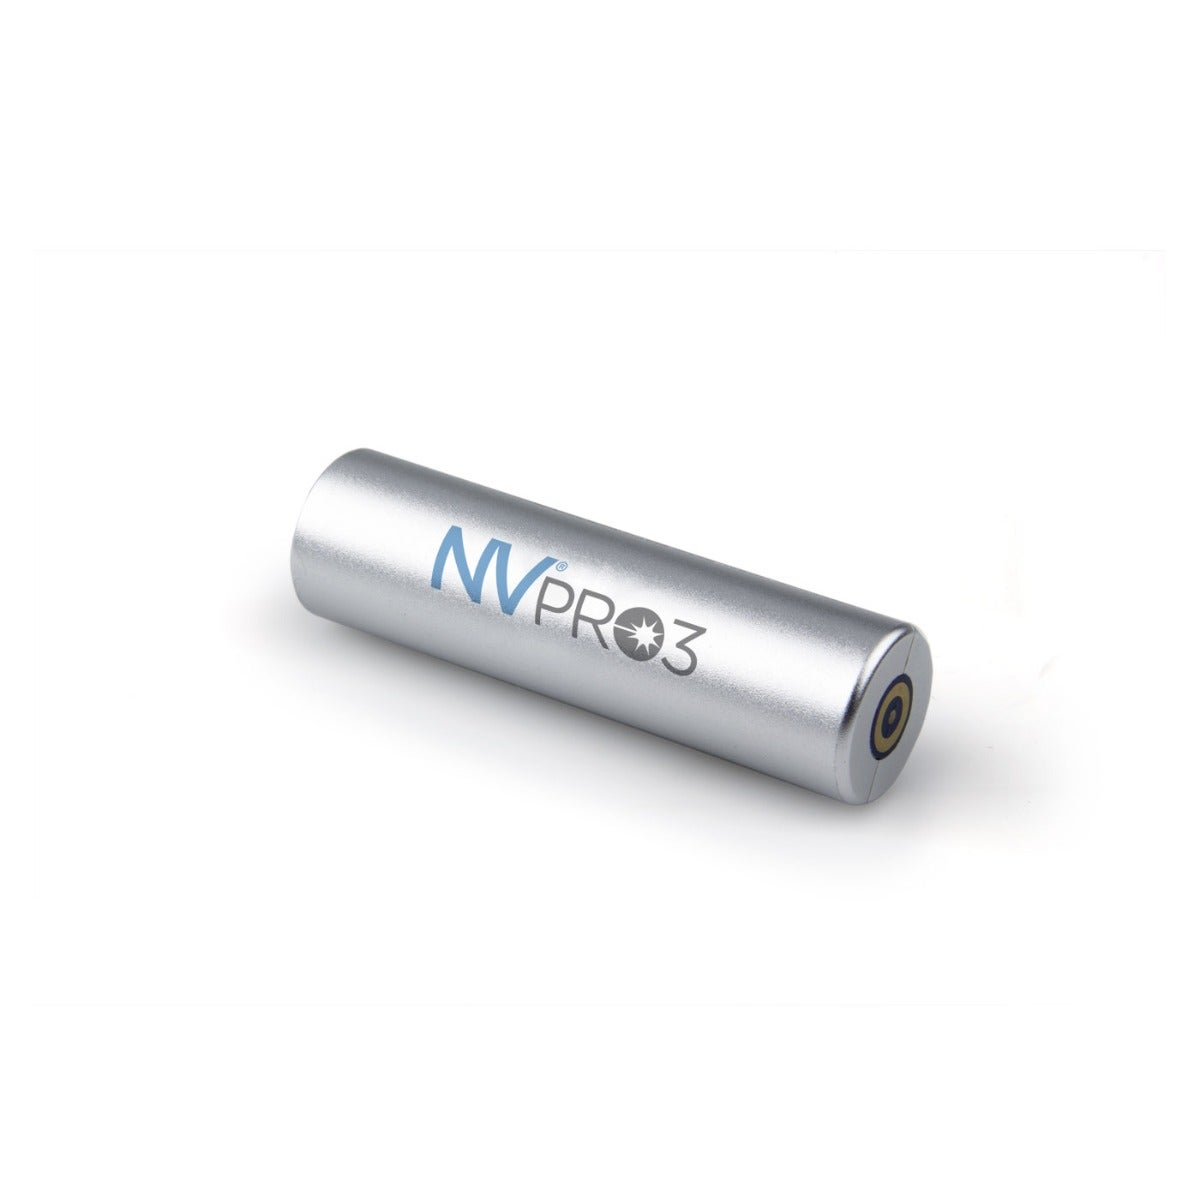 NV® PRO3 Rechargeable Lithium Ion Battery